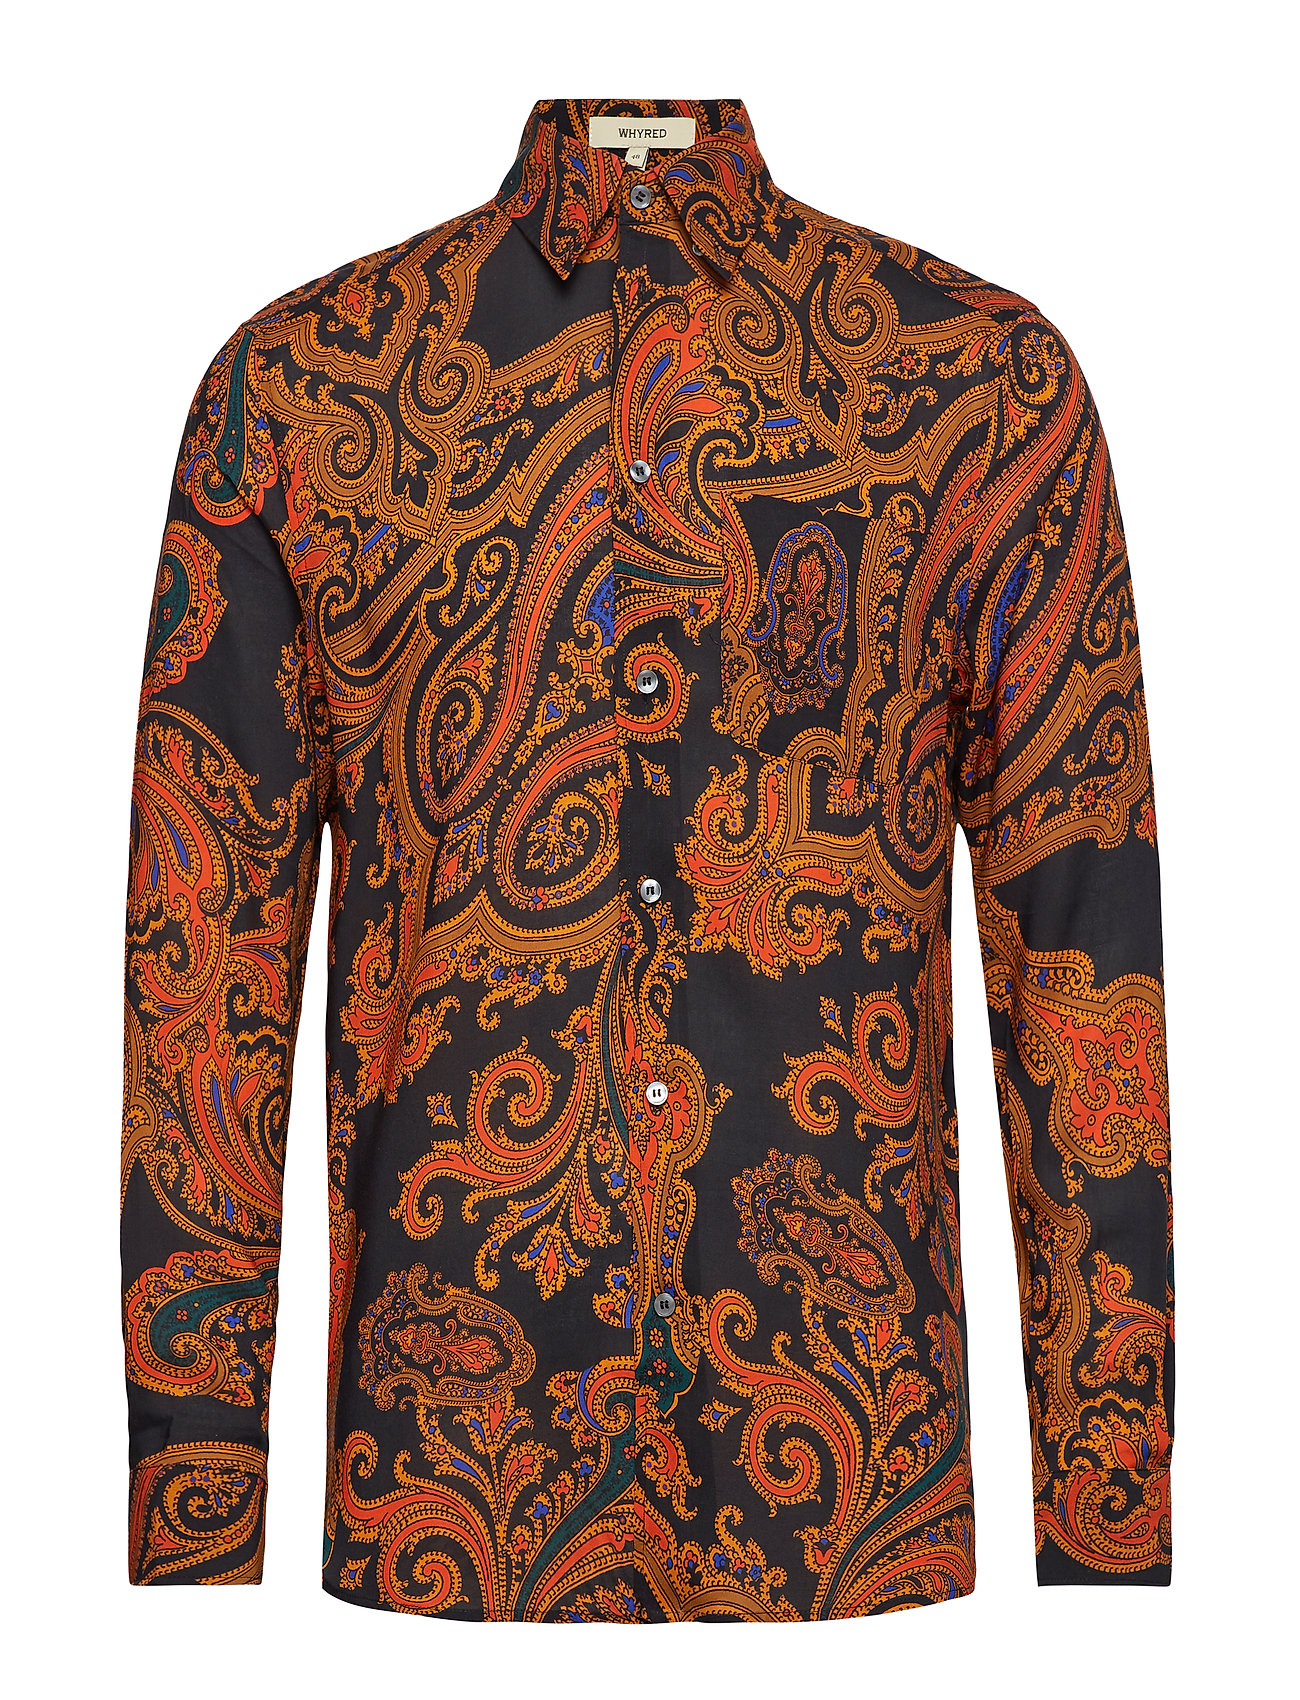 Whyred MILLS B:D PAISLEY - BLACK